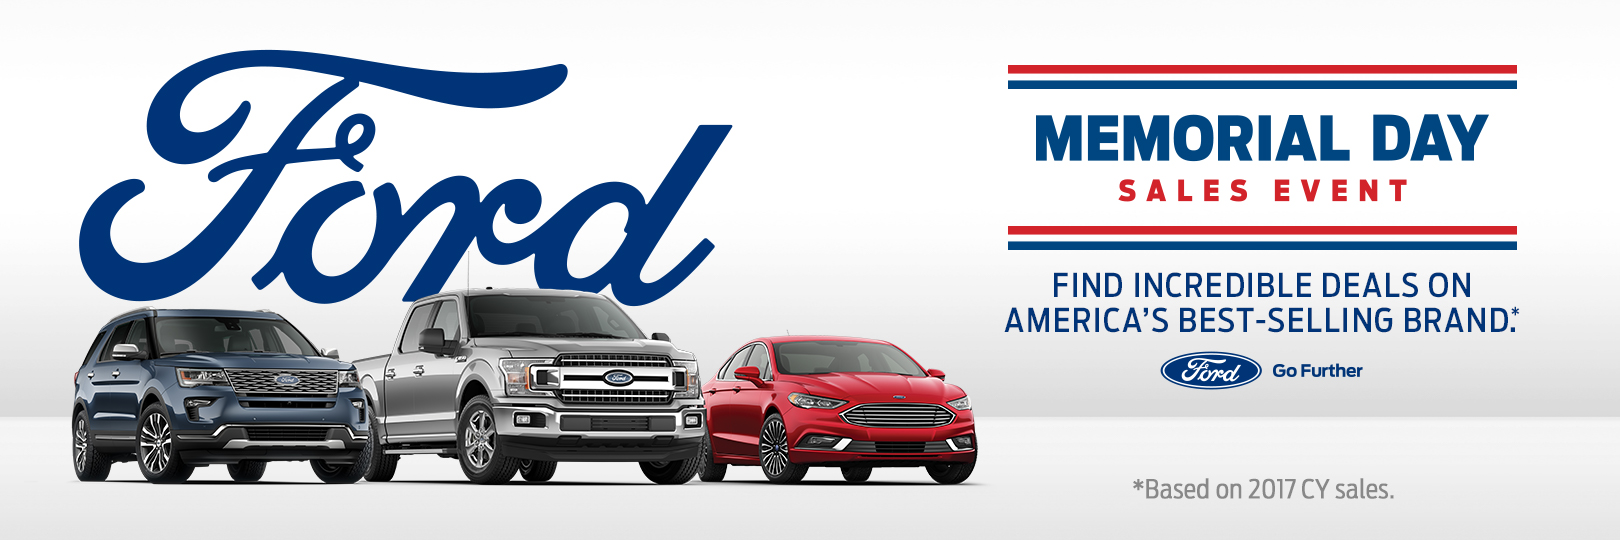 Ford Memorial Day Sale 2018